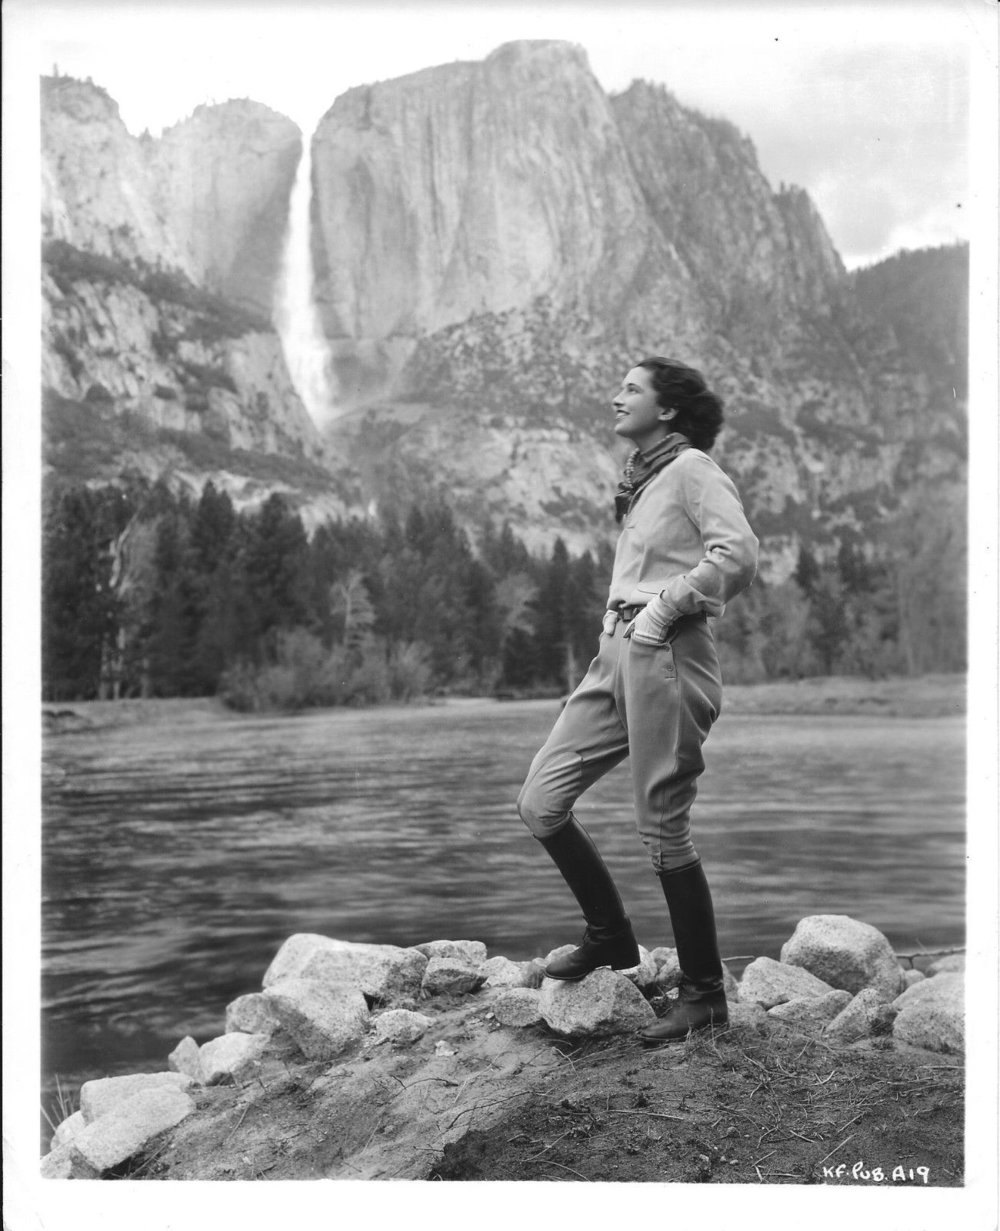 Vintage Camping Photos /// Vintage photo of a woman taking in the view, I'm guessing on a hike or camping trip.